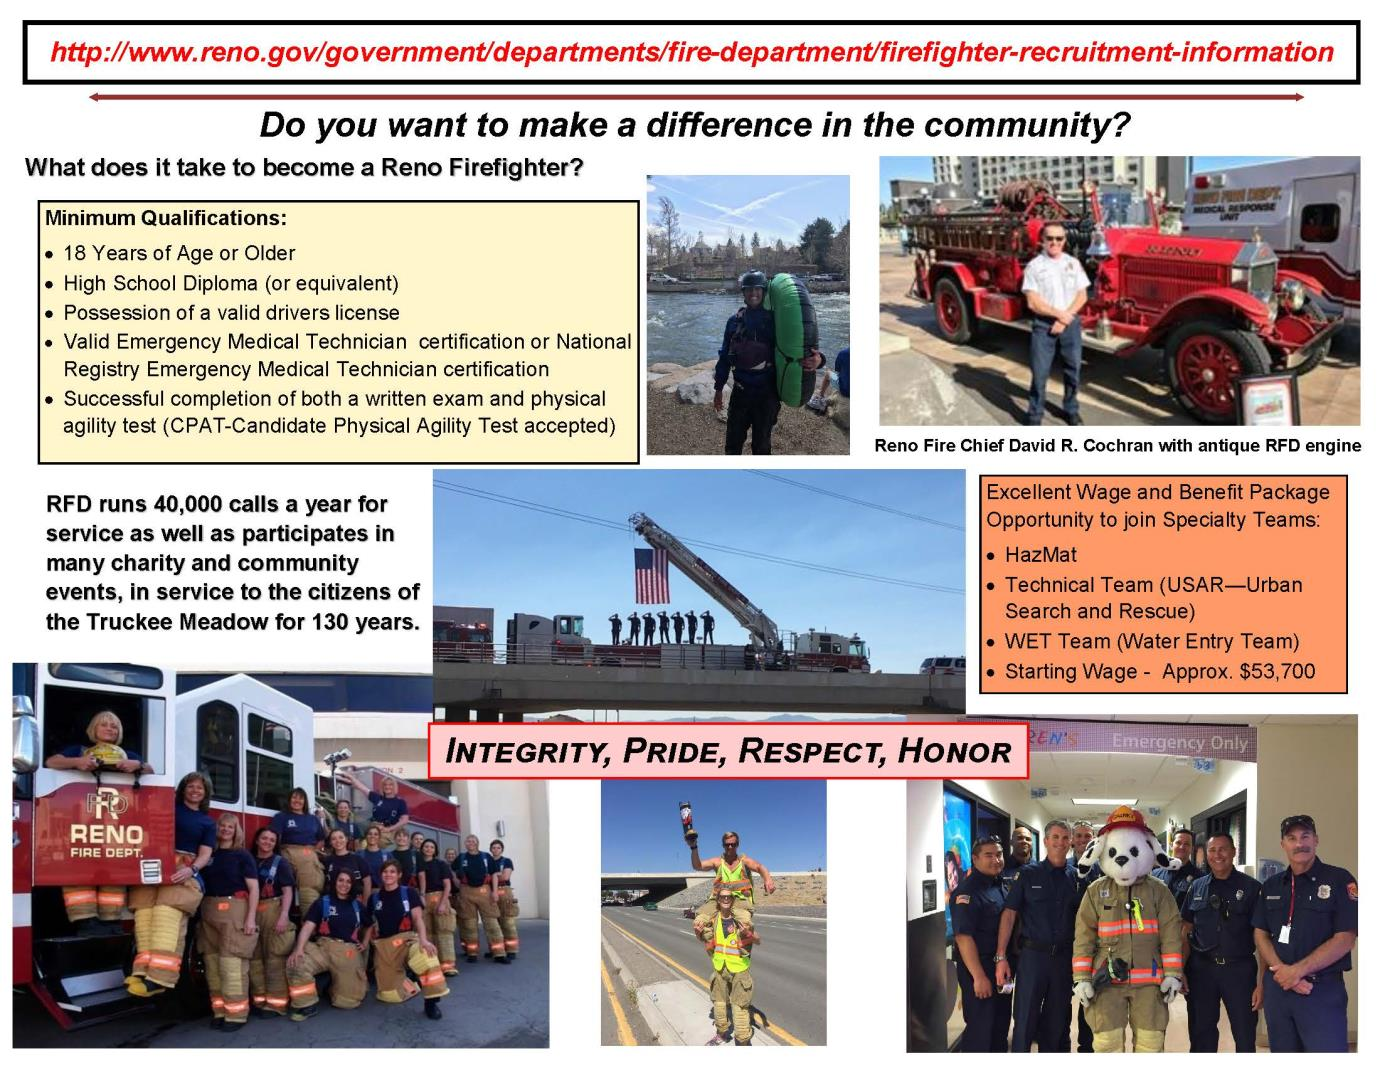 Reno fire recruitment information city of reno rfd recruit brouchure versionpage1 rfd recruit brouchure versionpage2 xflitez Choice Image